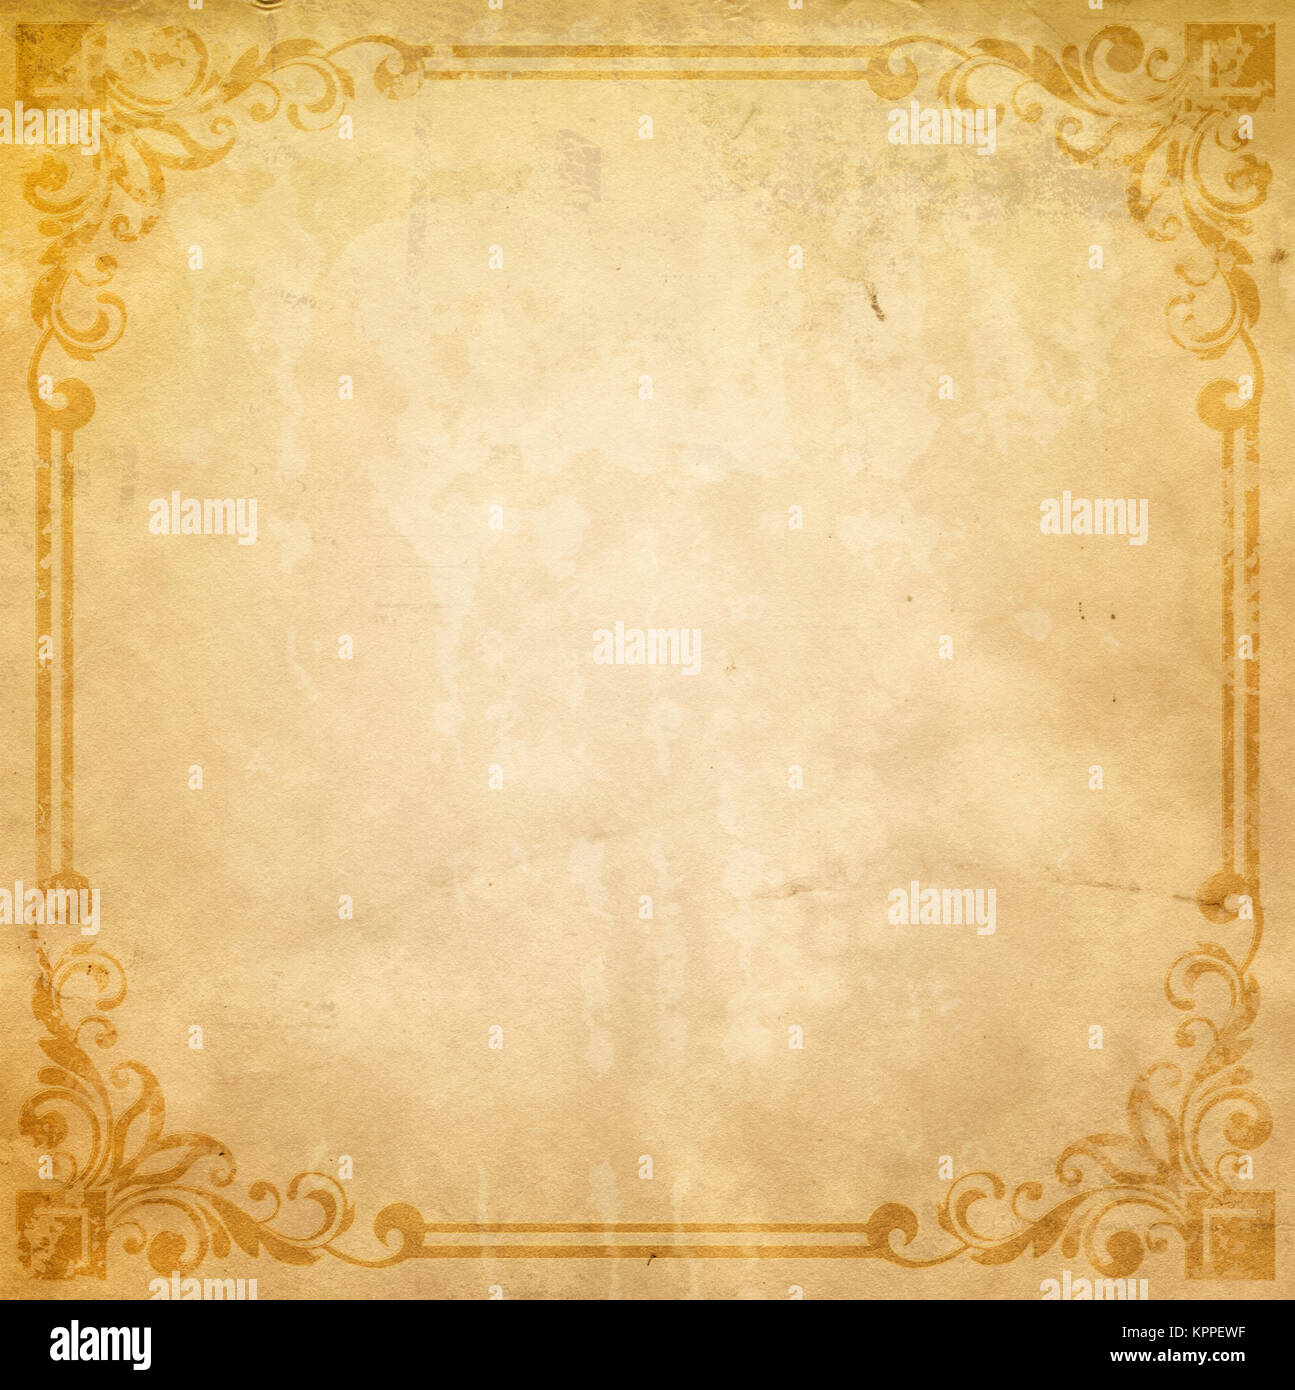 Old Dirty Paper Background With Decorative Vintage Border Texture